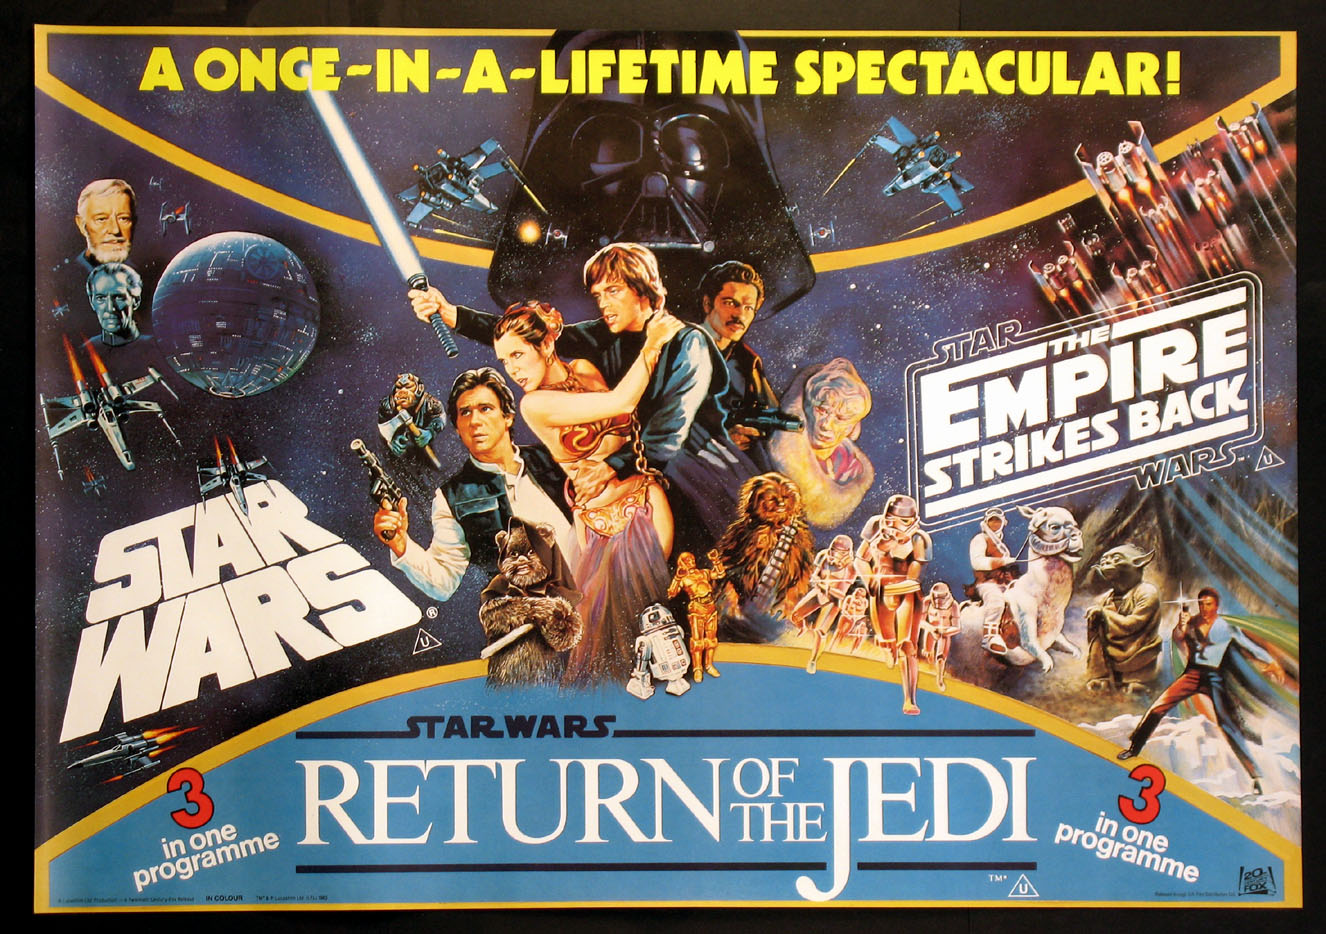 STAR WARS / EMPIRE STRIKES BACK / RETURN OF THE JEDI @ FilmPosters.com